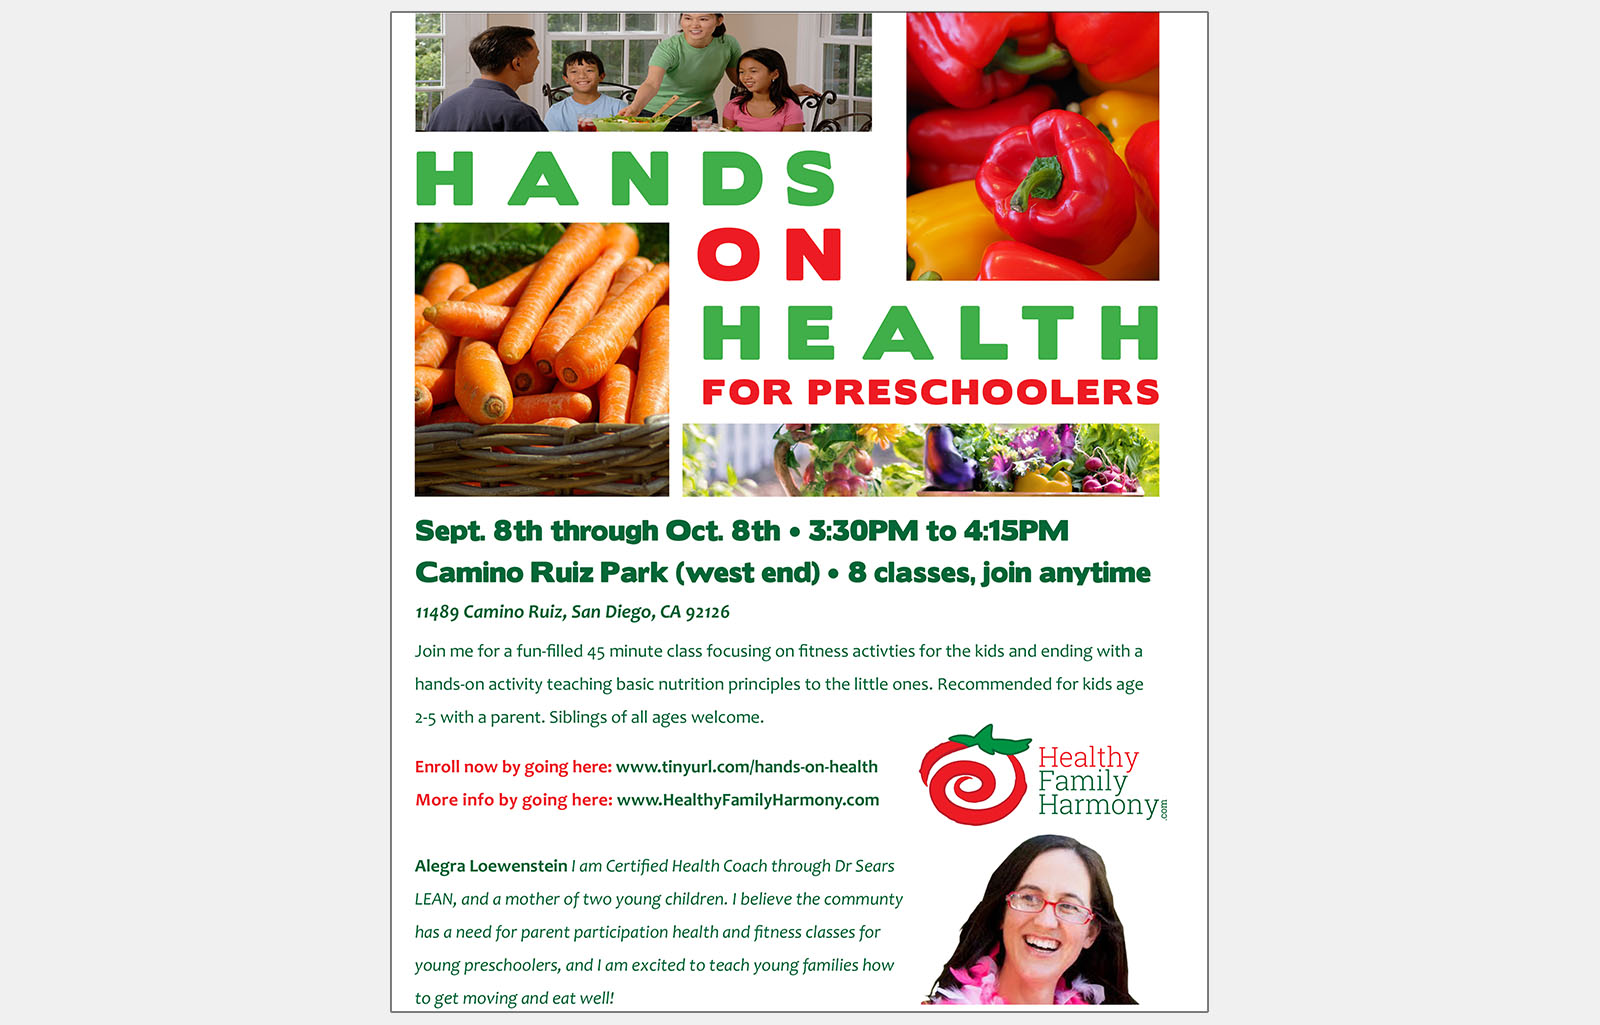 Healthy Family Harmony flyer